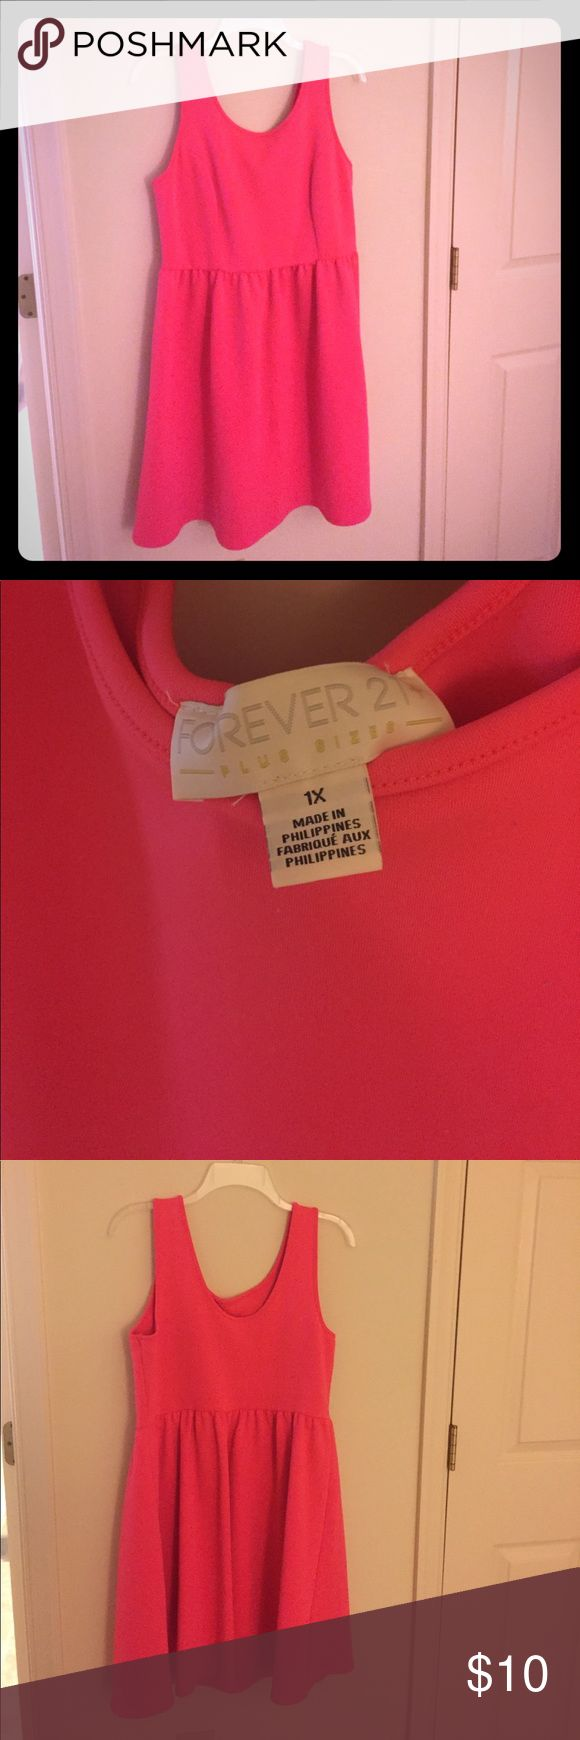 """Coral Sundress Bright Coral sundress from Forever 21. Stretchy material, very comfortable 👗 I'm 5'4"""" and it comes to just below my knees Forever 21 Dresses Midi"""